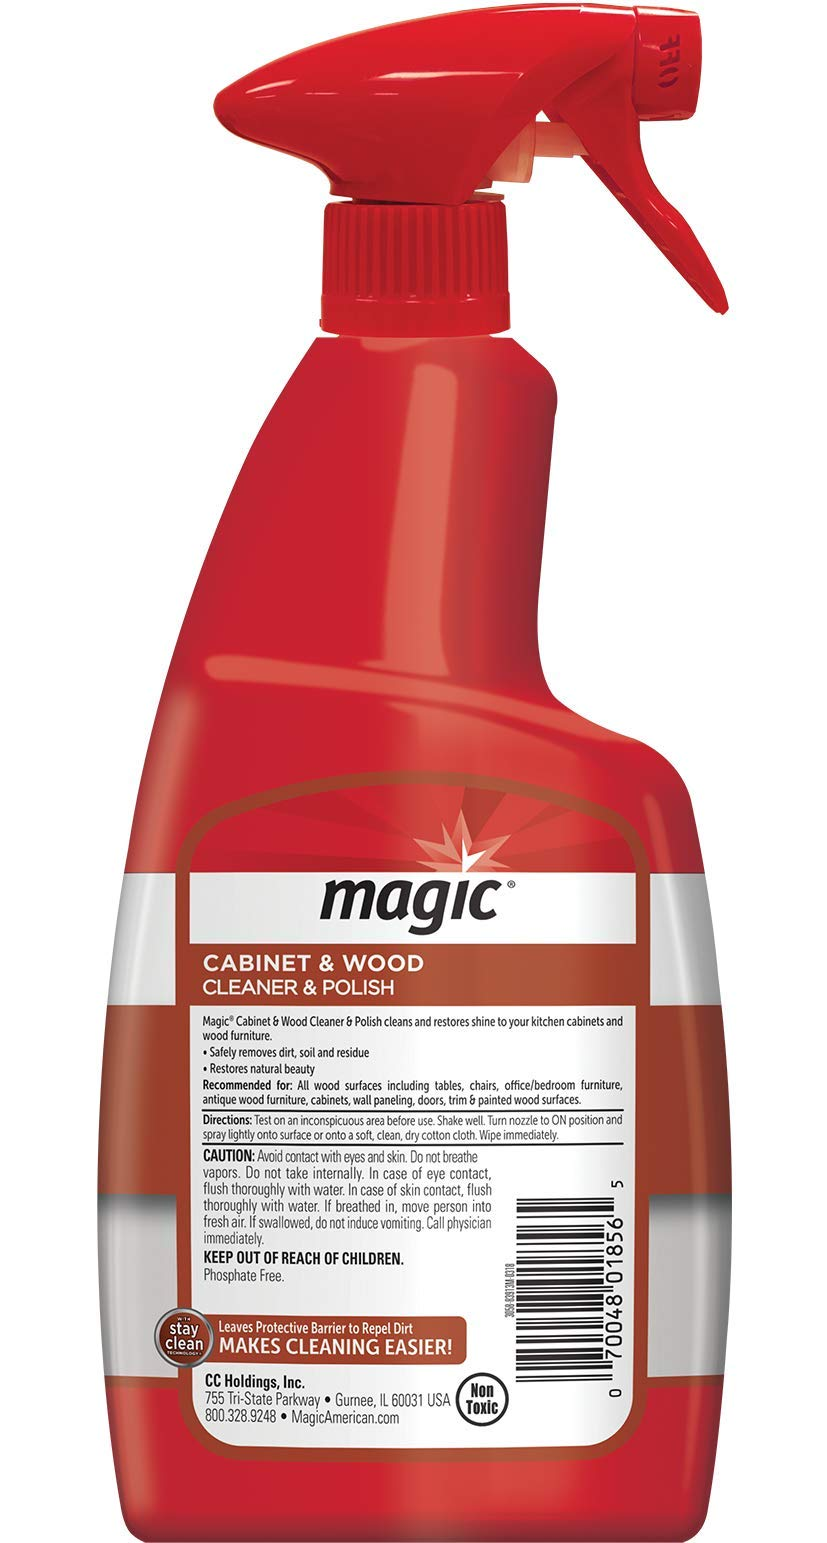 Magic Wood Furniture Cleaner and Polish - 24 Ounce Spray (2 Pack) - Restore Wood Doors Tables Chairs and Cabinets by Magic (Image #2)